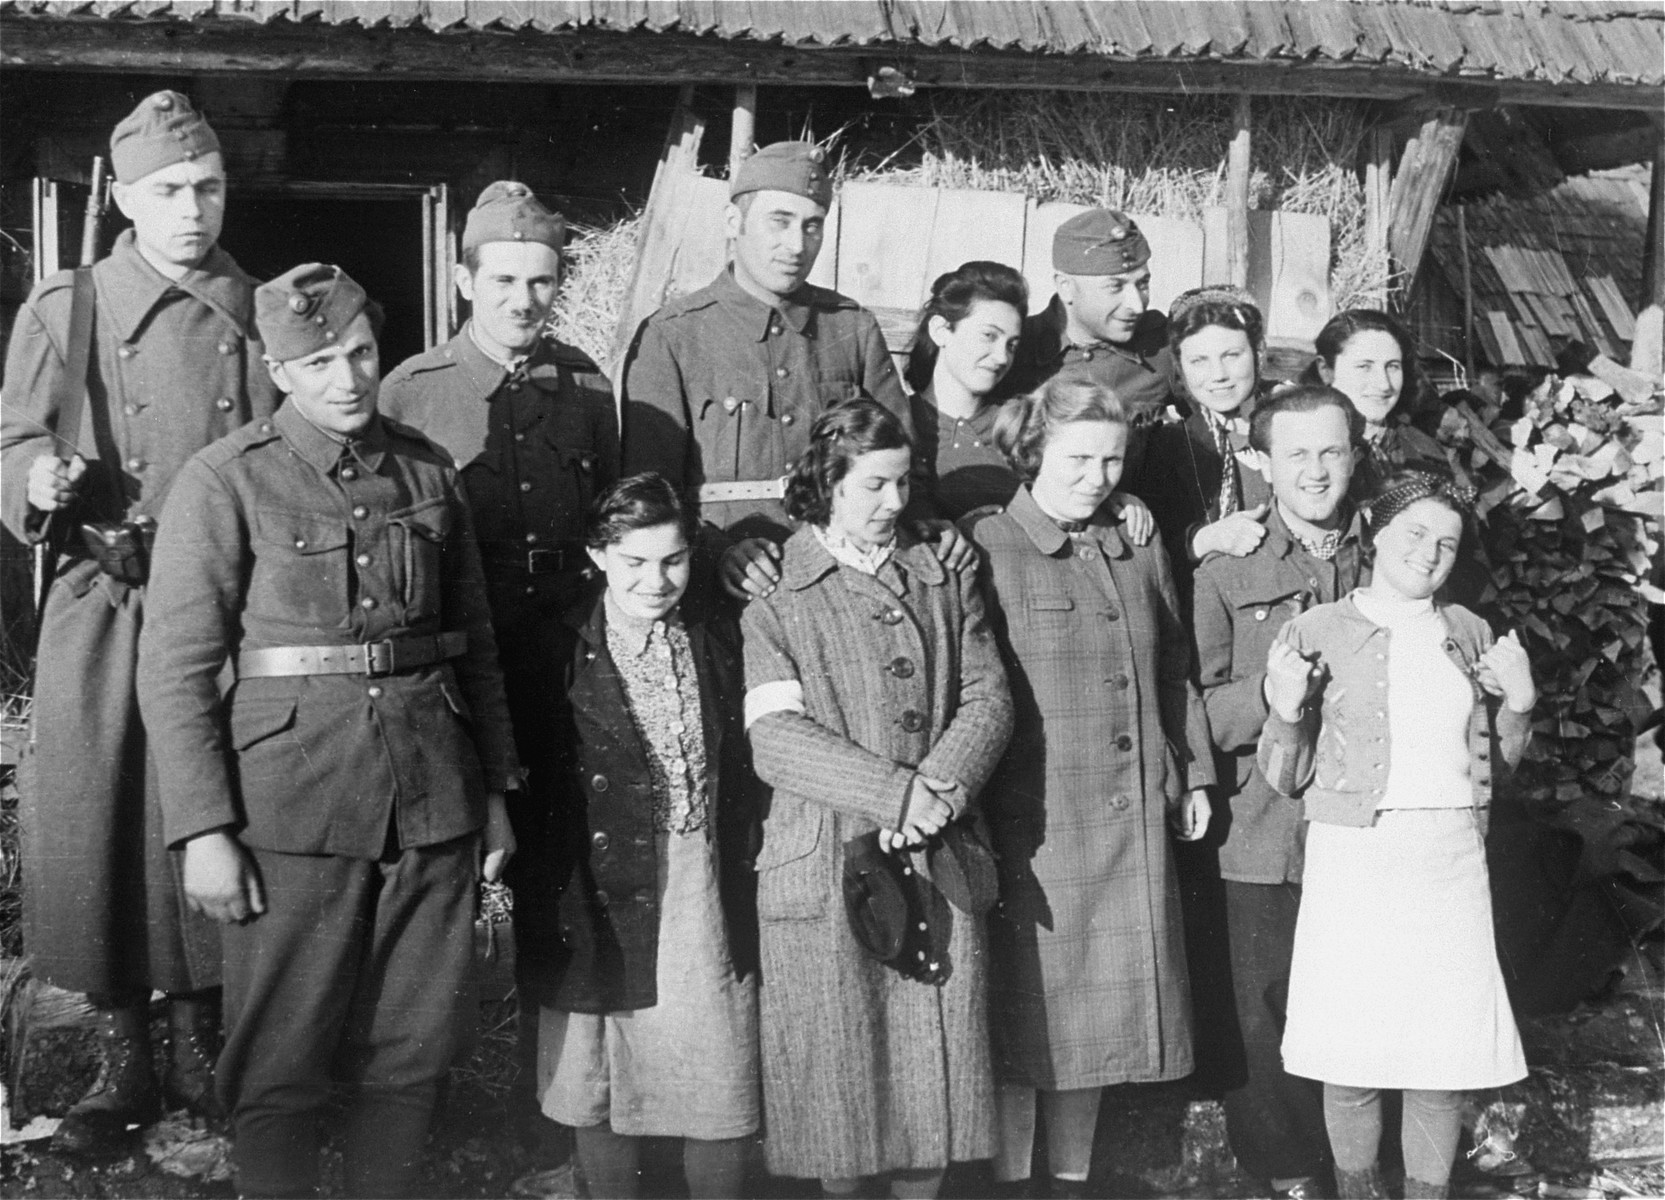 Local Jewish women wearing armbands pose with Dr. Adalbert Feher near the Hungarian-Jewish Labor Camp where Company 108/57 was housed.